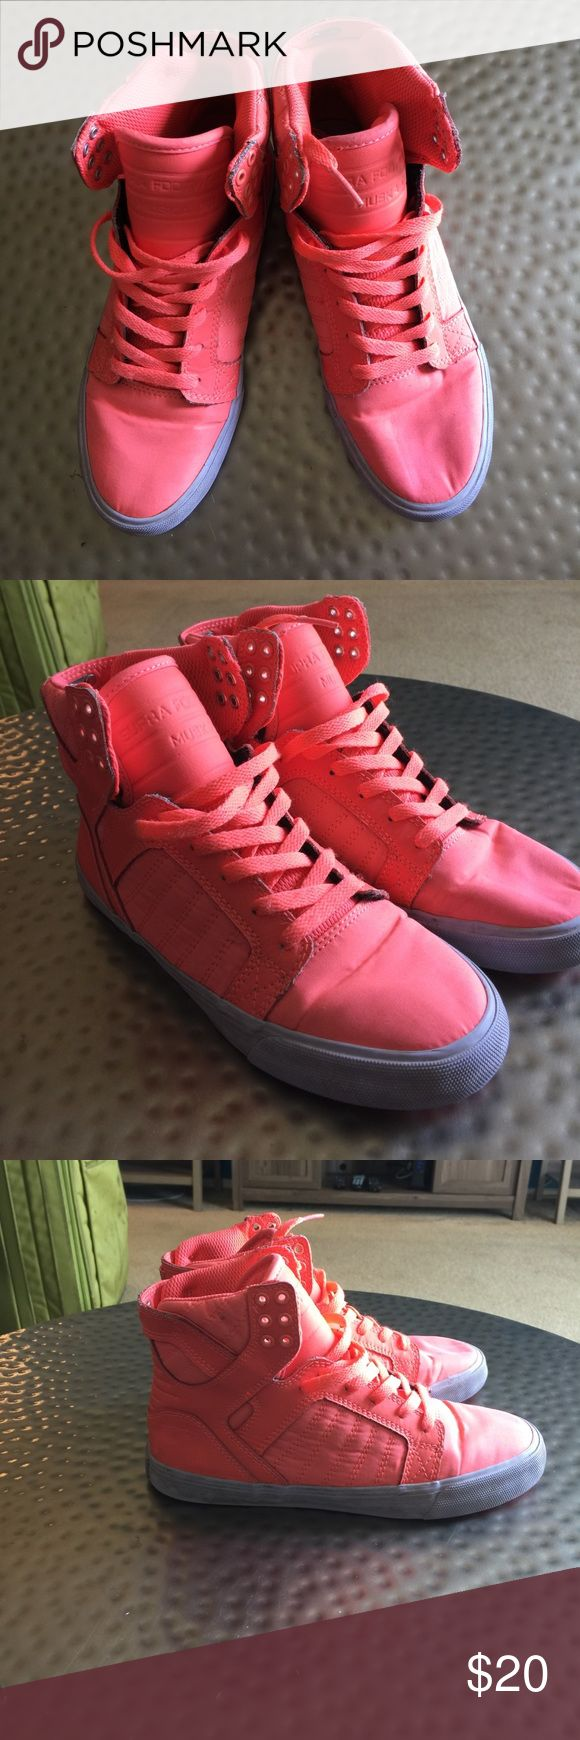 Hot Coral Supra's High top, matching laces, hot coral color. Worn a few times as festivals - the top of the left shoe has a bit of what I would assume is dirt on it. Most likely just need a good wash. 7.5 Supra Shoes Sneakers